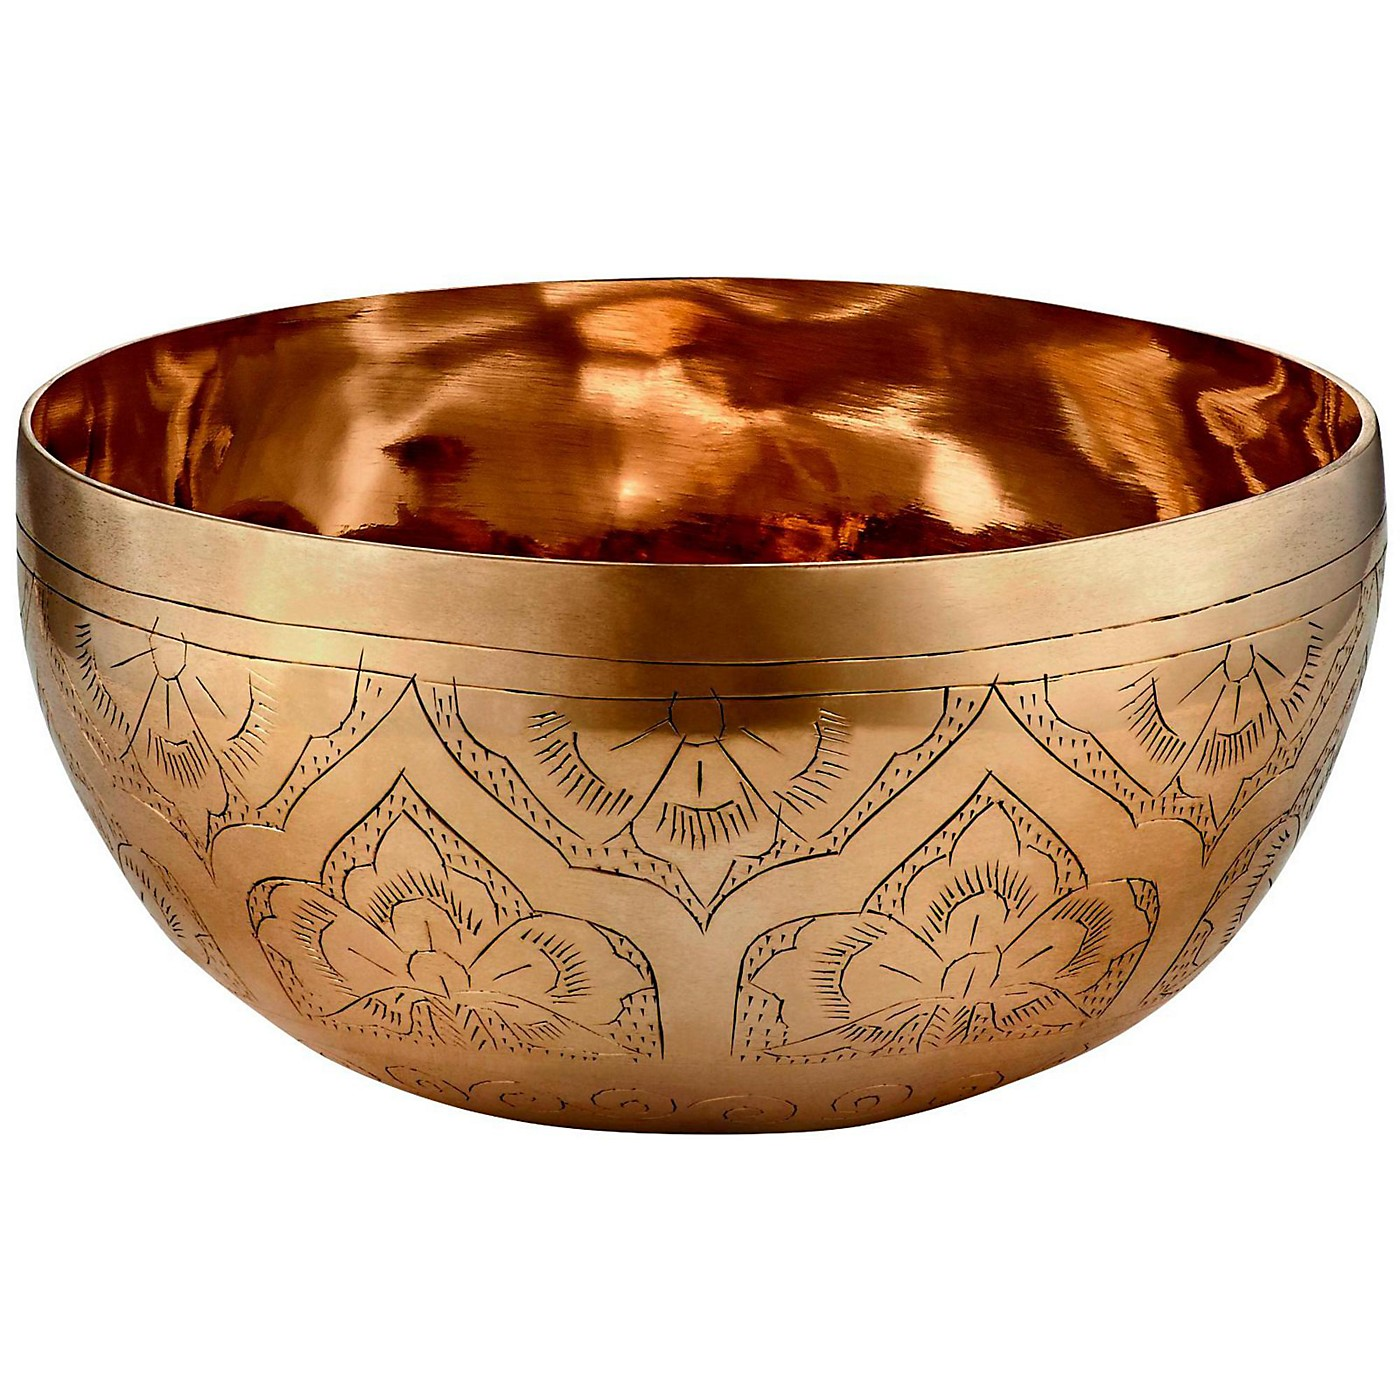 MEINL Special Engraved Singing Bowl, 5.4 - 5.7in / 13.6 - 14.6 cm thumbnail